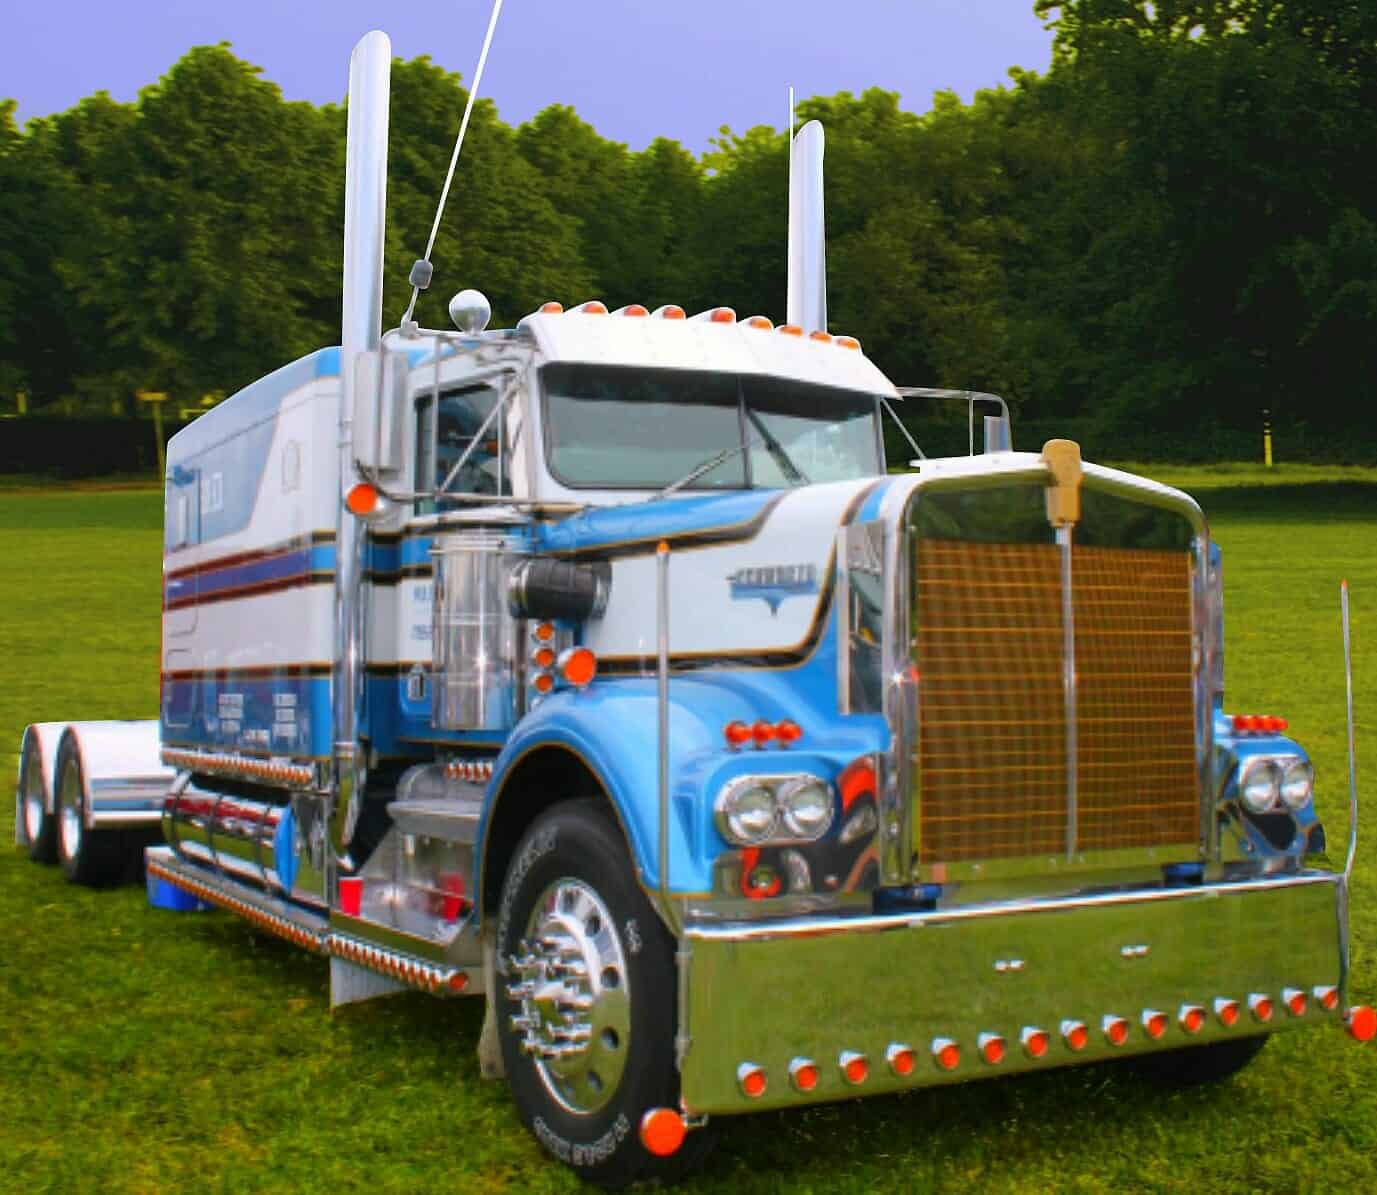 d707f5d8c6 The Kenworth W900 Models Photo Collection You ve Been Looking For!